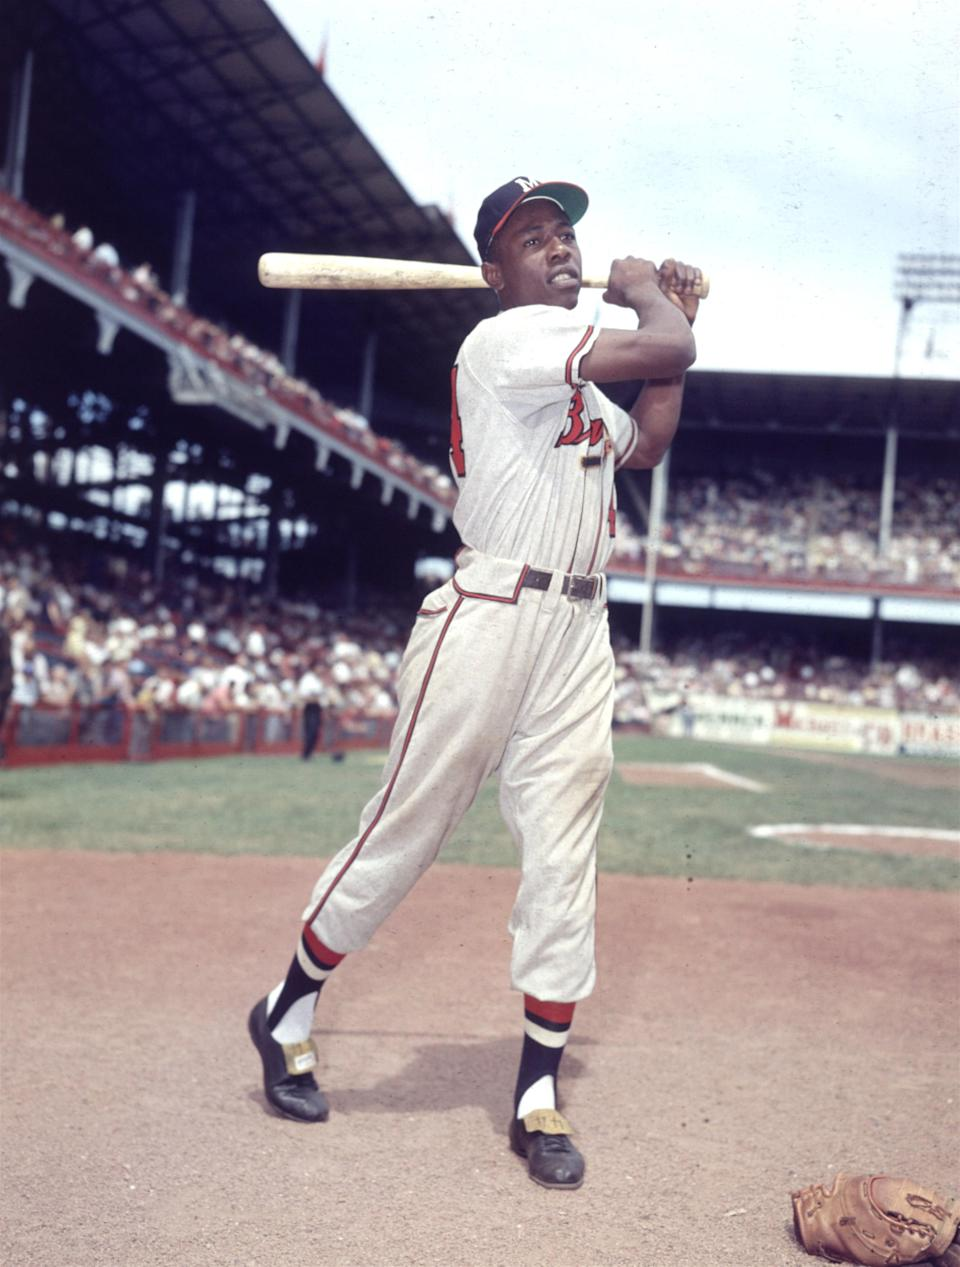 FILE- In this 1954 file photo, Milwaukee Braves' Hank Aaron poses for a photo at Ebbets Field during an exhibition season in New York. Hank Aaron, who endured racist threats with stoic dignity during his pursuit of Babe Ruth but went on to break the career home run record in the pre-steroids era, died early Friday, Jan. 22, 2021. He was 86. The Atlanta Braves said Aaron died peacefully in his sleep. No cause of death was given. (AP Photo, File)